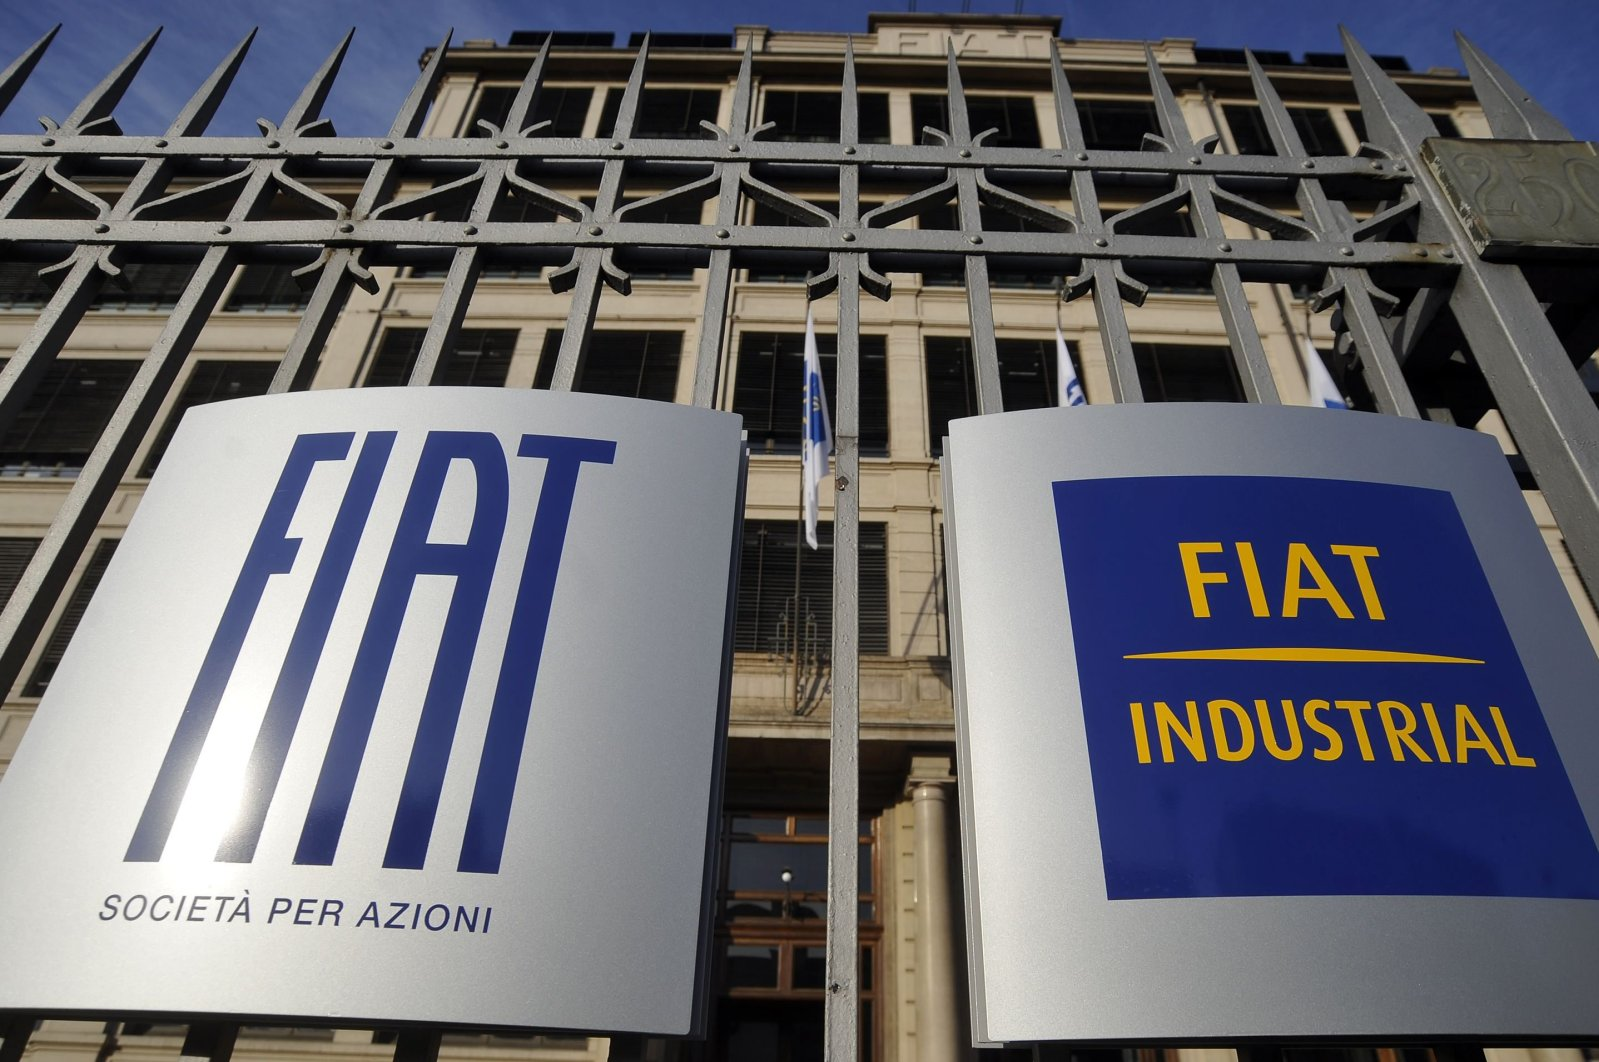 Fiat's logos are seen at the main entrance of the Fiat headquarters in Turin, Italy, Jan. 12, 2011. (Reuters Photo)